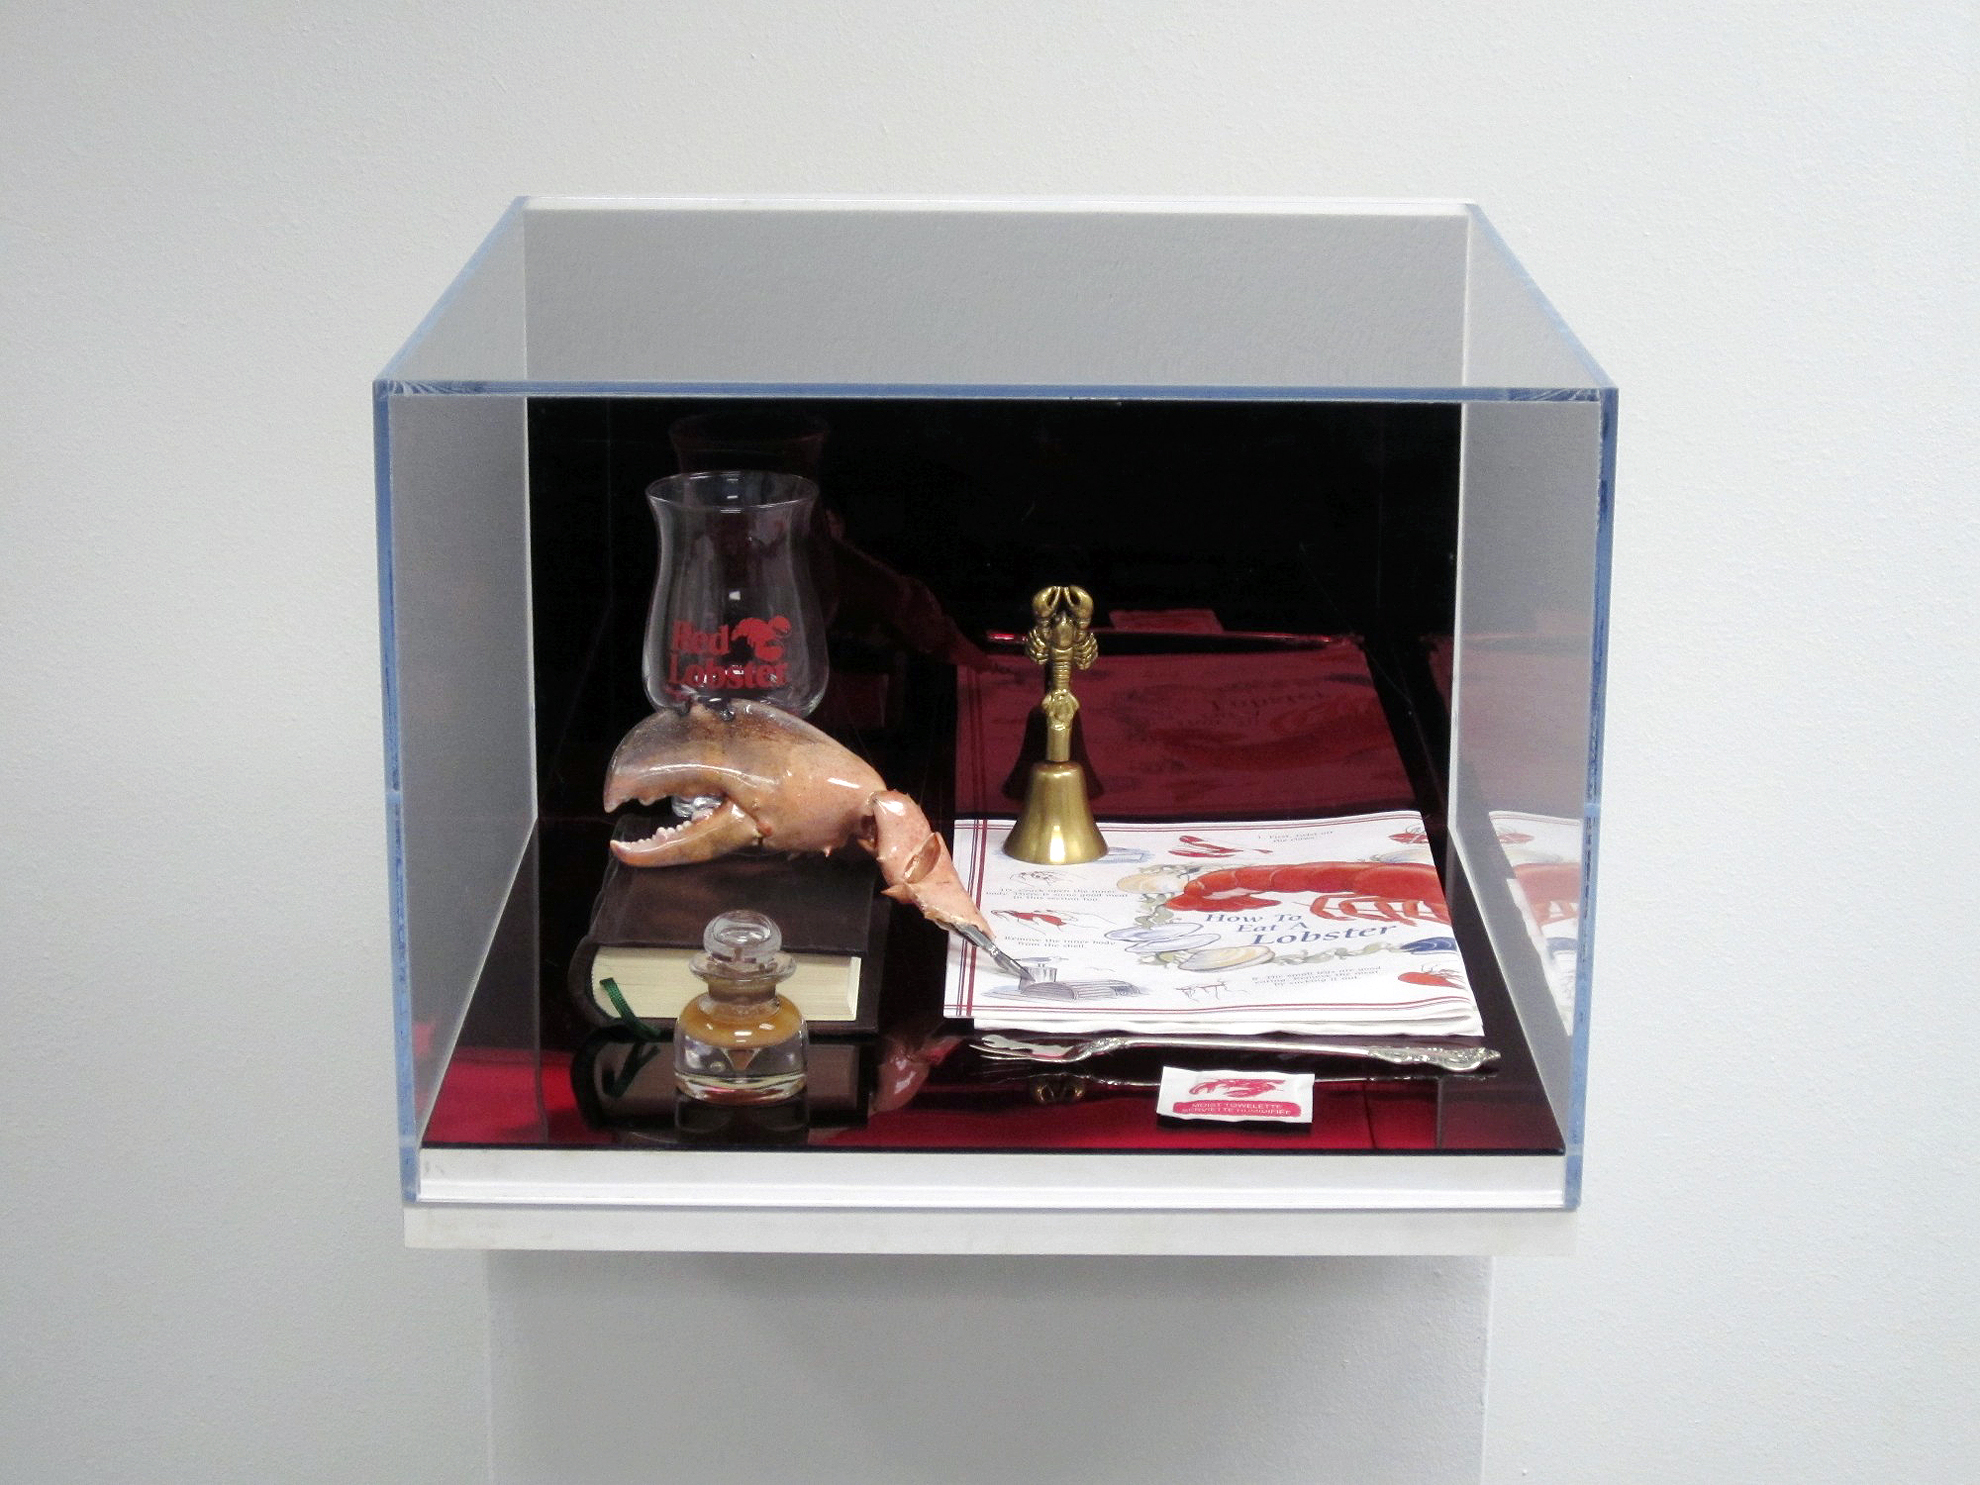 """How to Eat Lobster (Ritual)  2011 Wall mounted plexi-glass and wood vitrines, contents: red mirrored plexi-glass, """"Red Lobster"""" drinking glass, brass bell, paper placemat and napkin, leather book, moist towelette, sterling silver lobster fork, taxidermy lobster claw quill pen, homemade lobster ink with inkwell dimensions variable"""